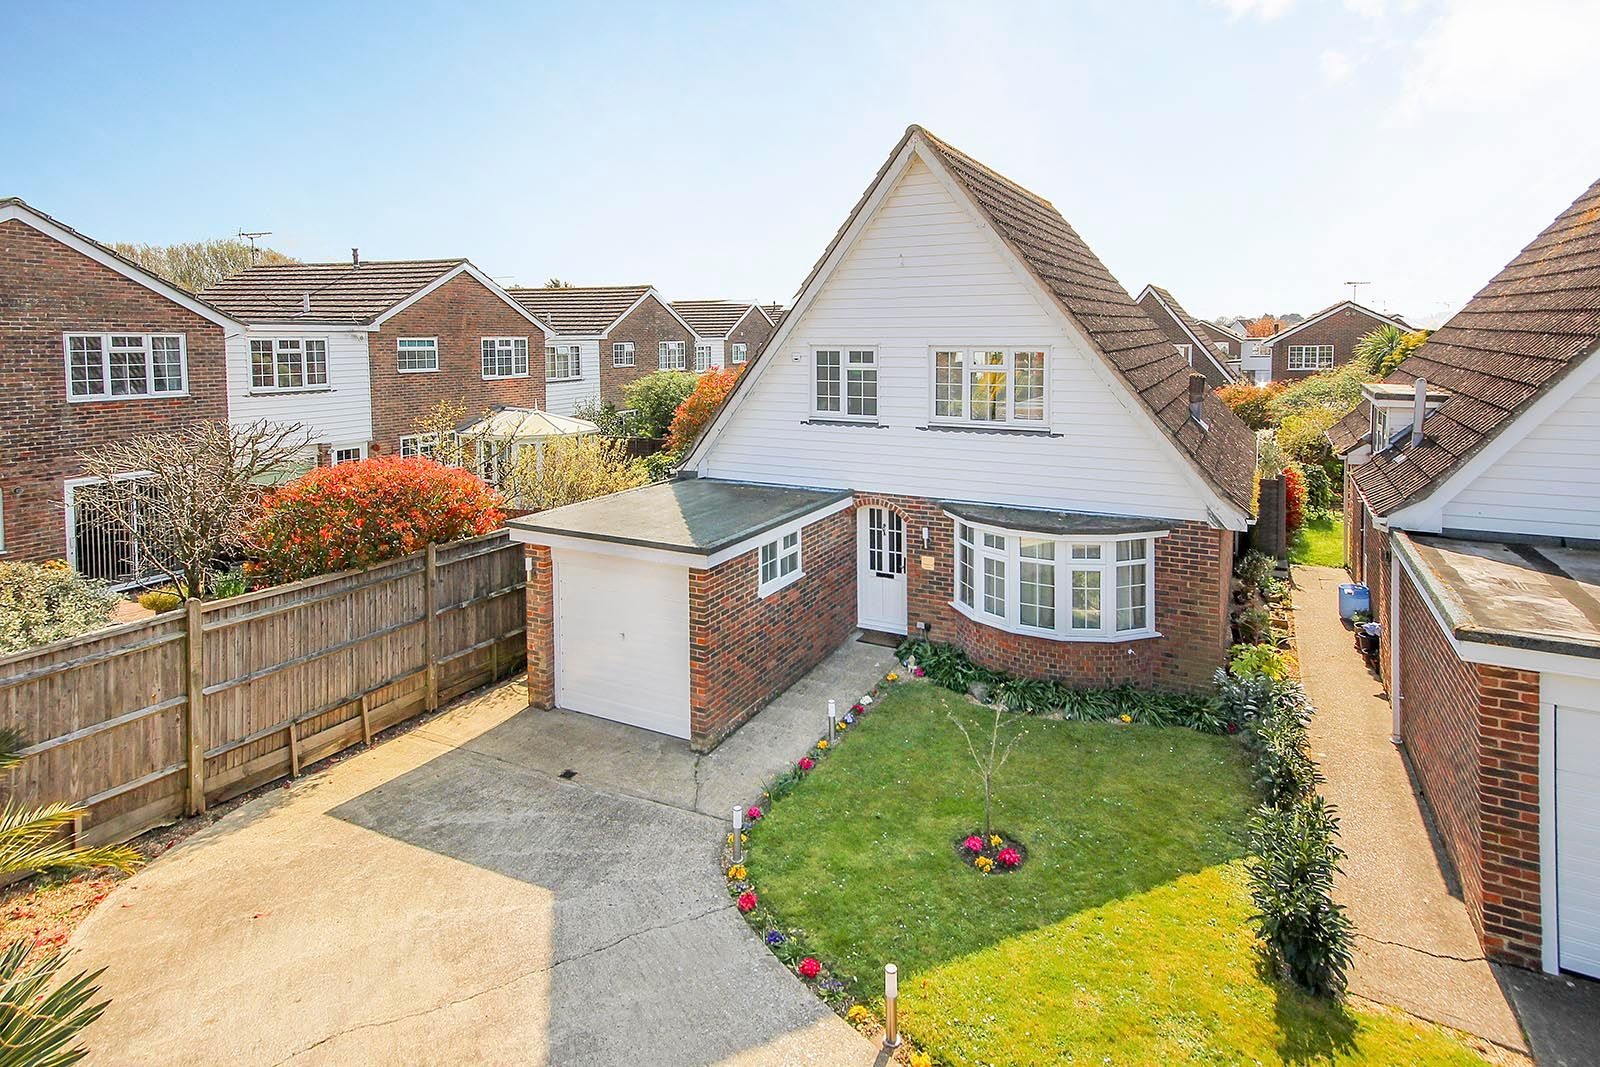 3 bed house for sale in Woodlands Close (COMP AUG 19)  - Property Image 1